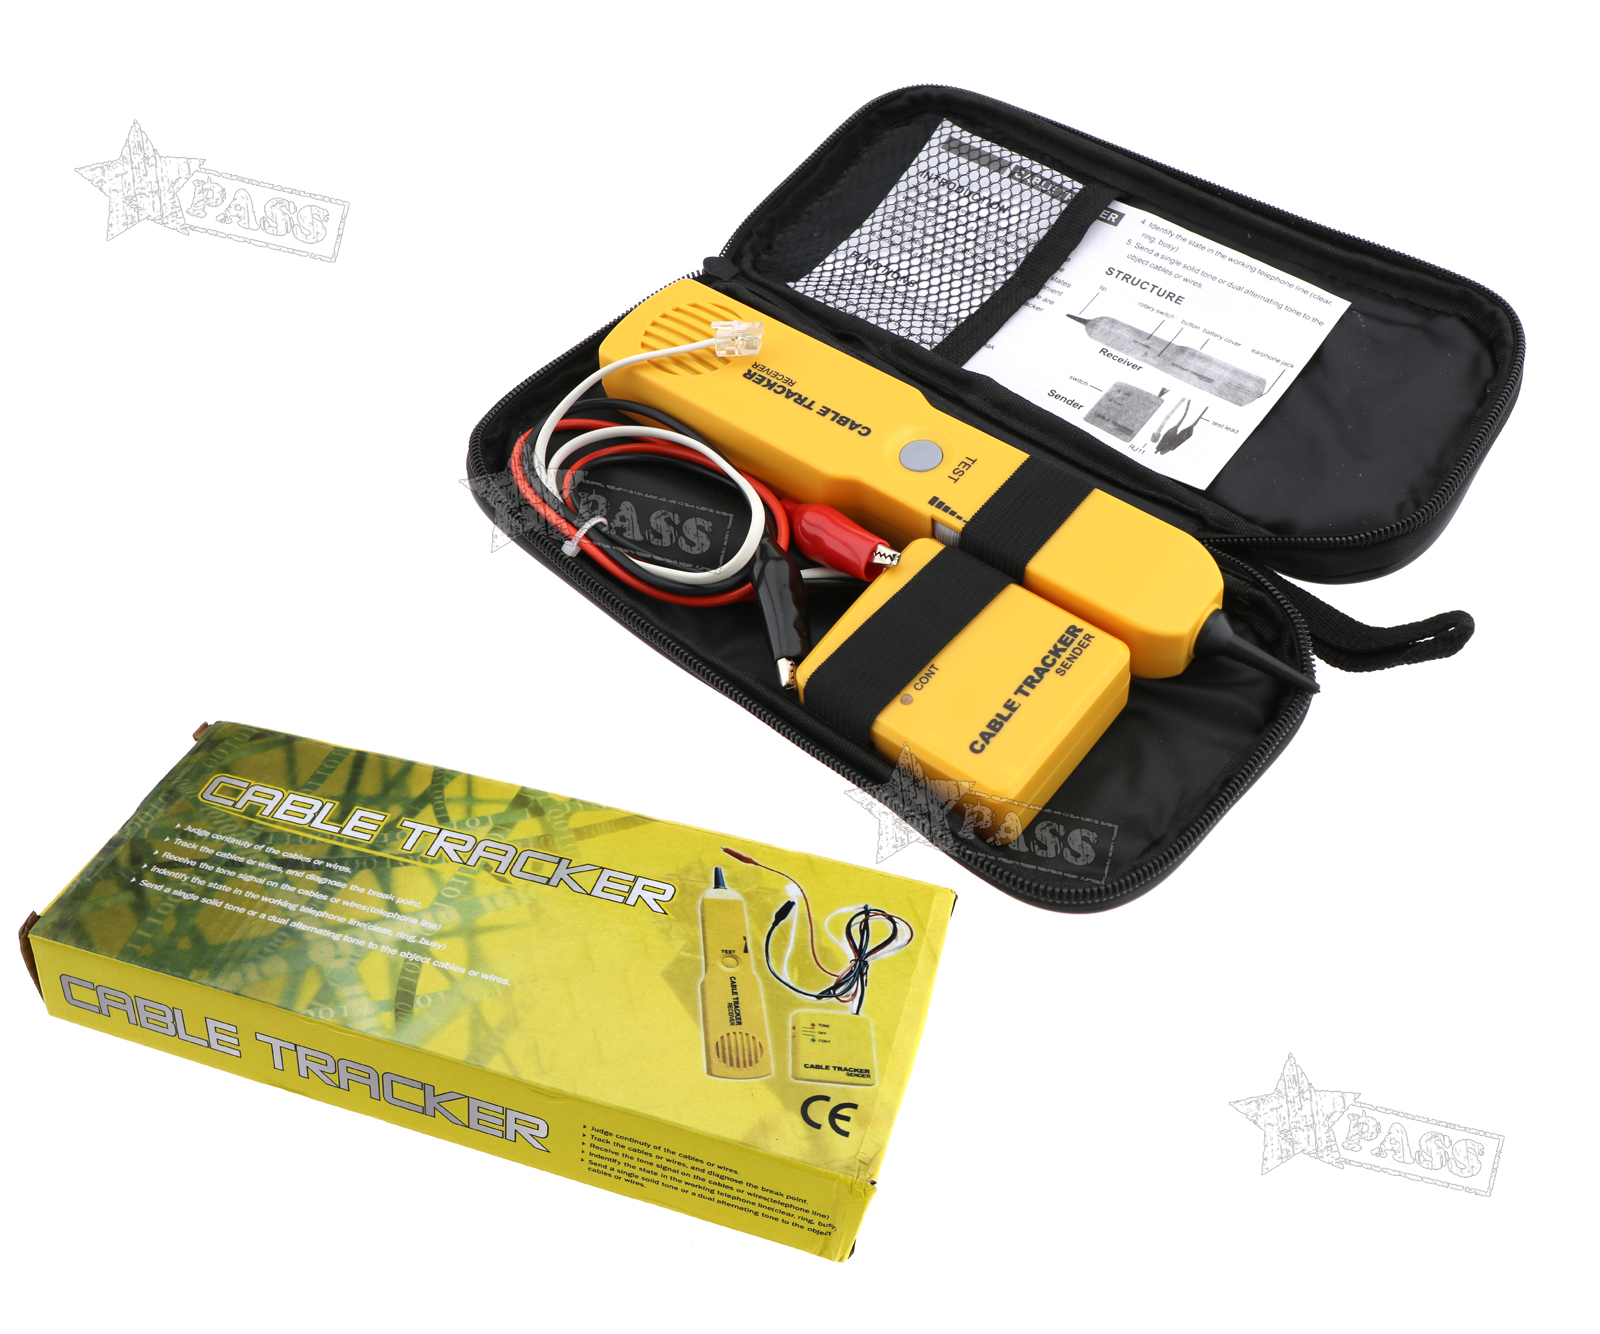 Telephone Network Tone Wire Cabletester Tracker Automotive Short Circuit Open Detector Tracersender Rj11 Cable Tester Lan